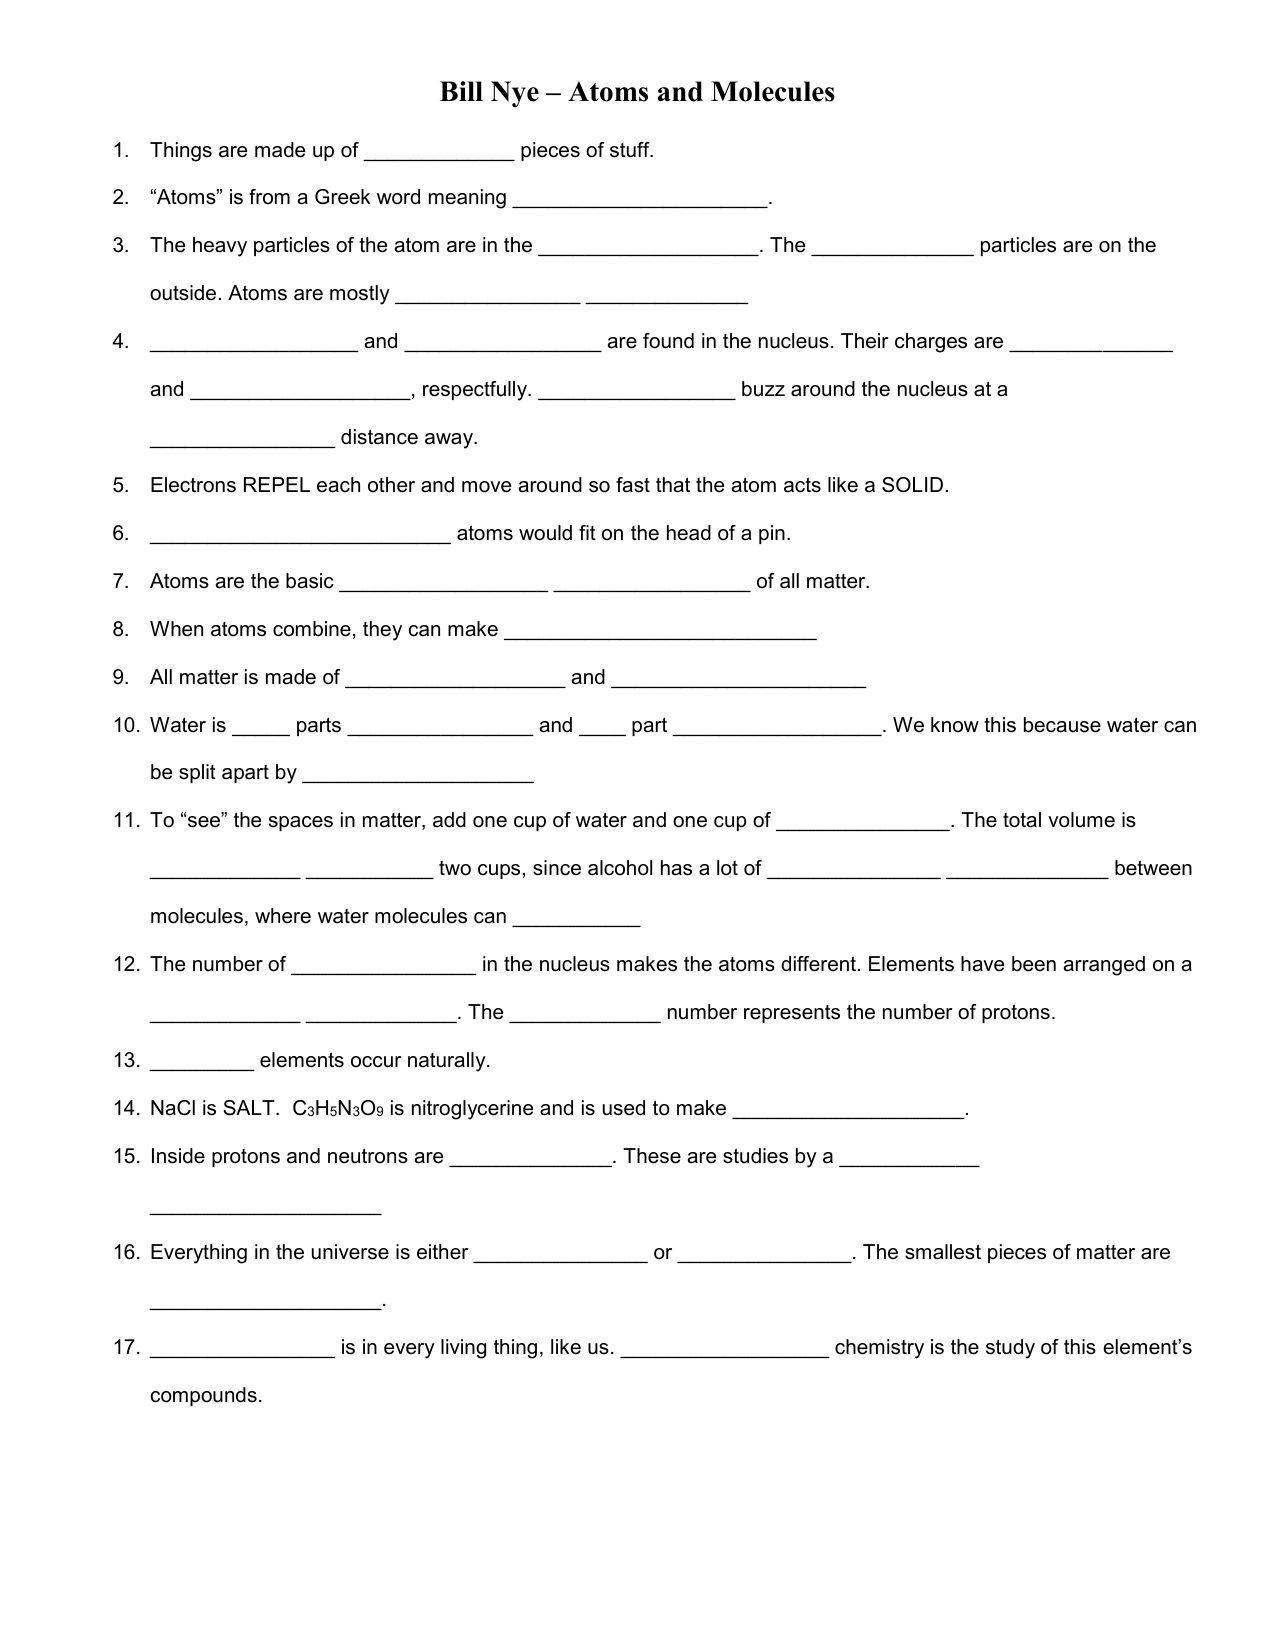 bill nye – atoms and molecules video worksheet